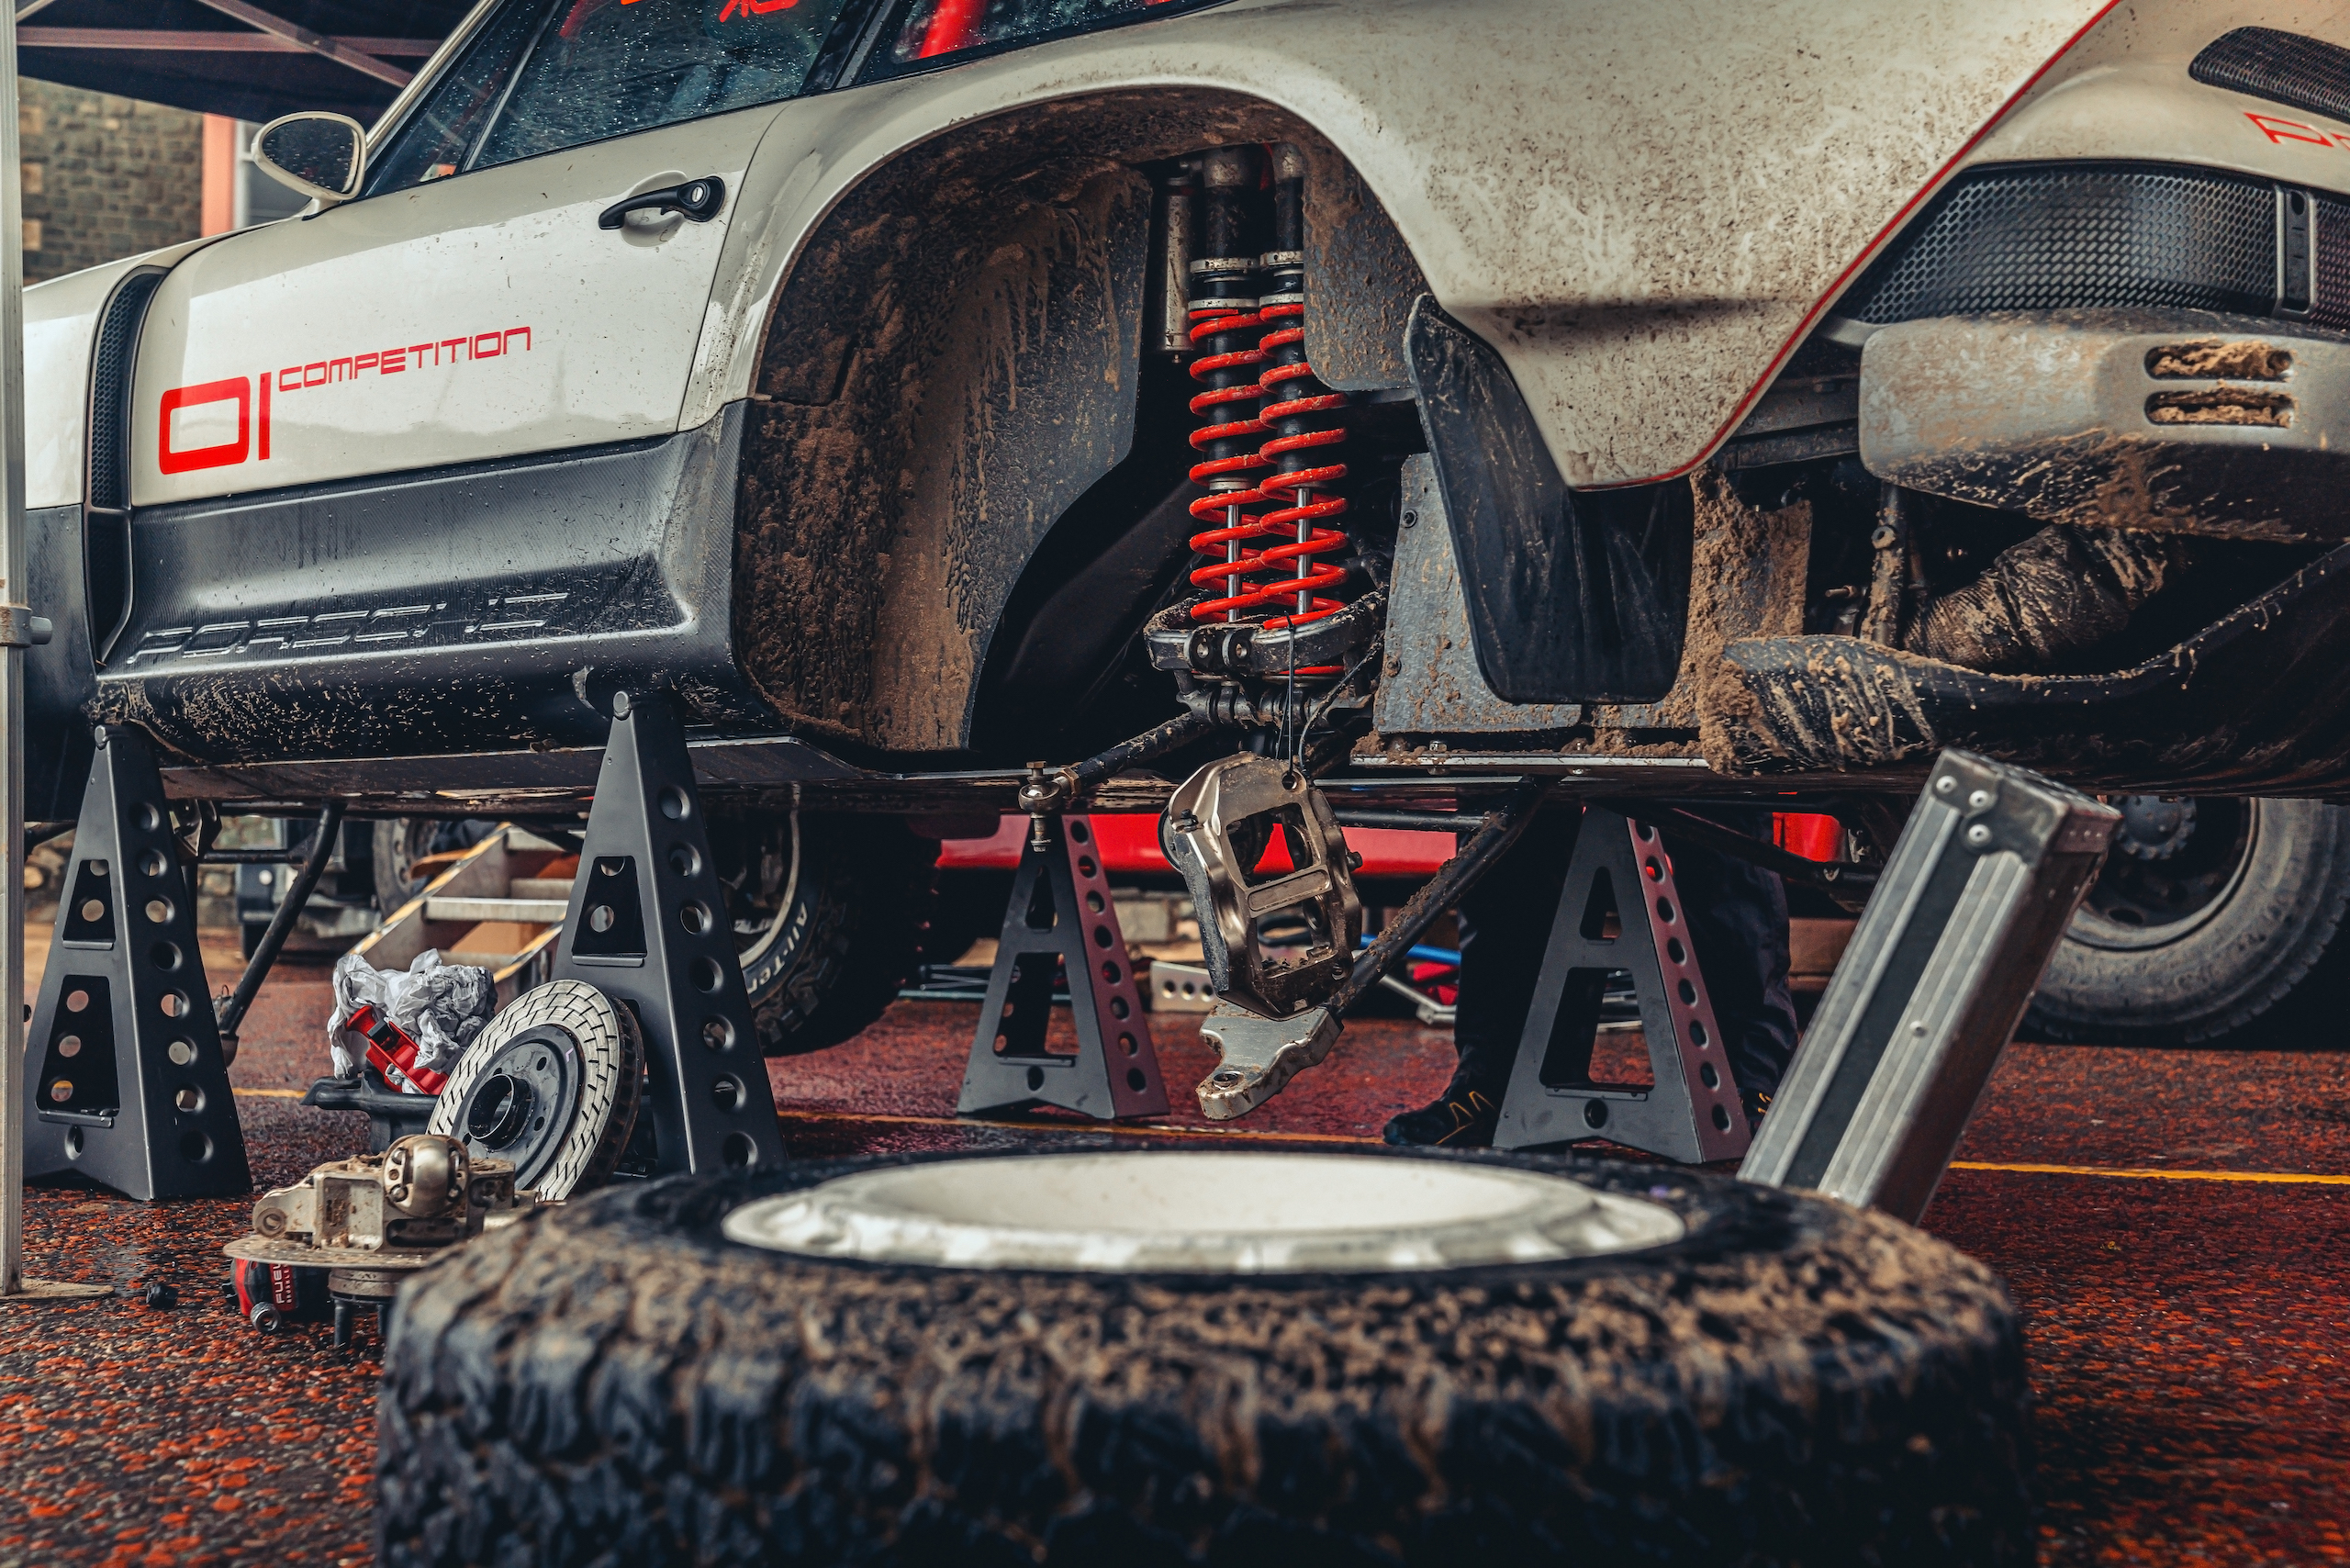 Singer All-Terrain Competition Study suspension close